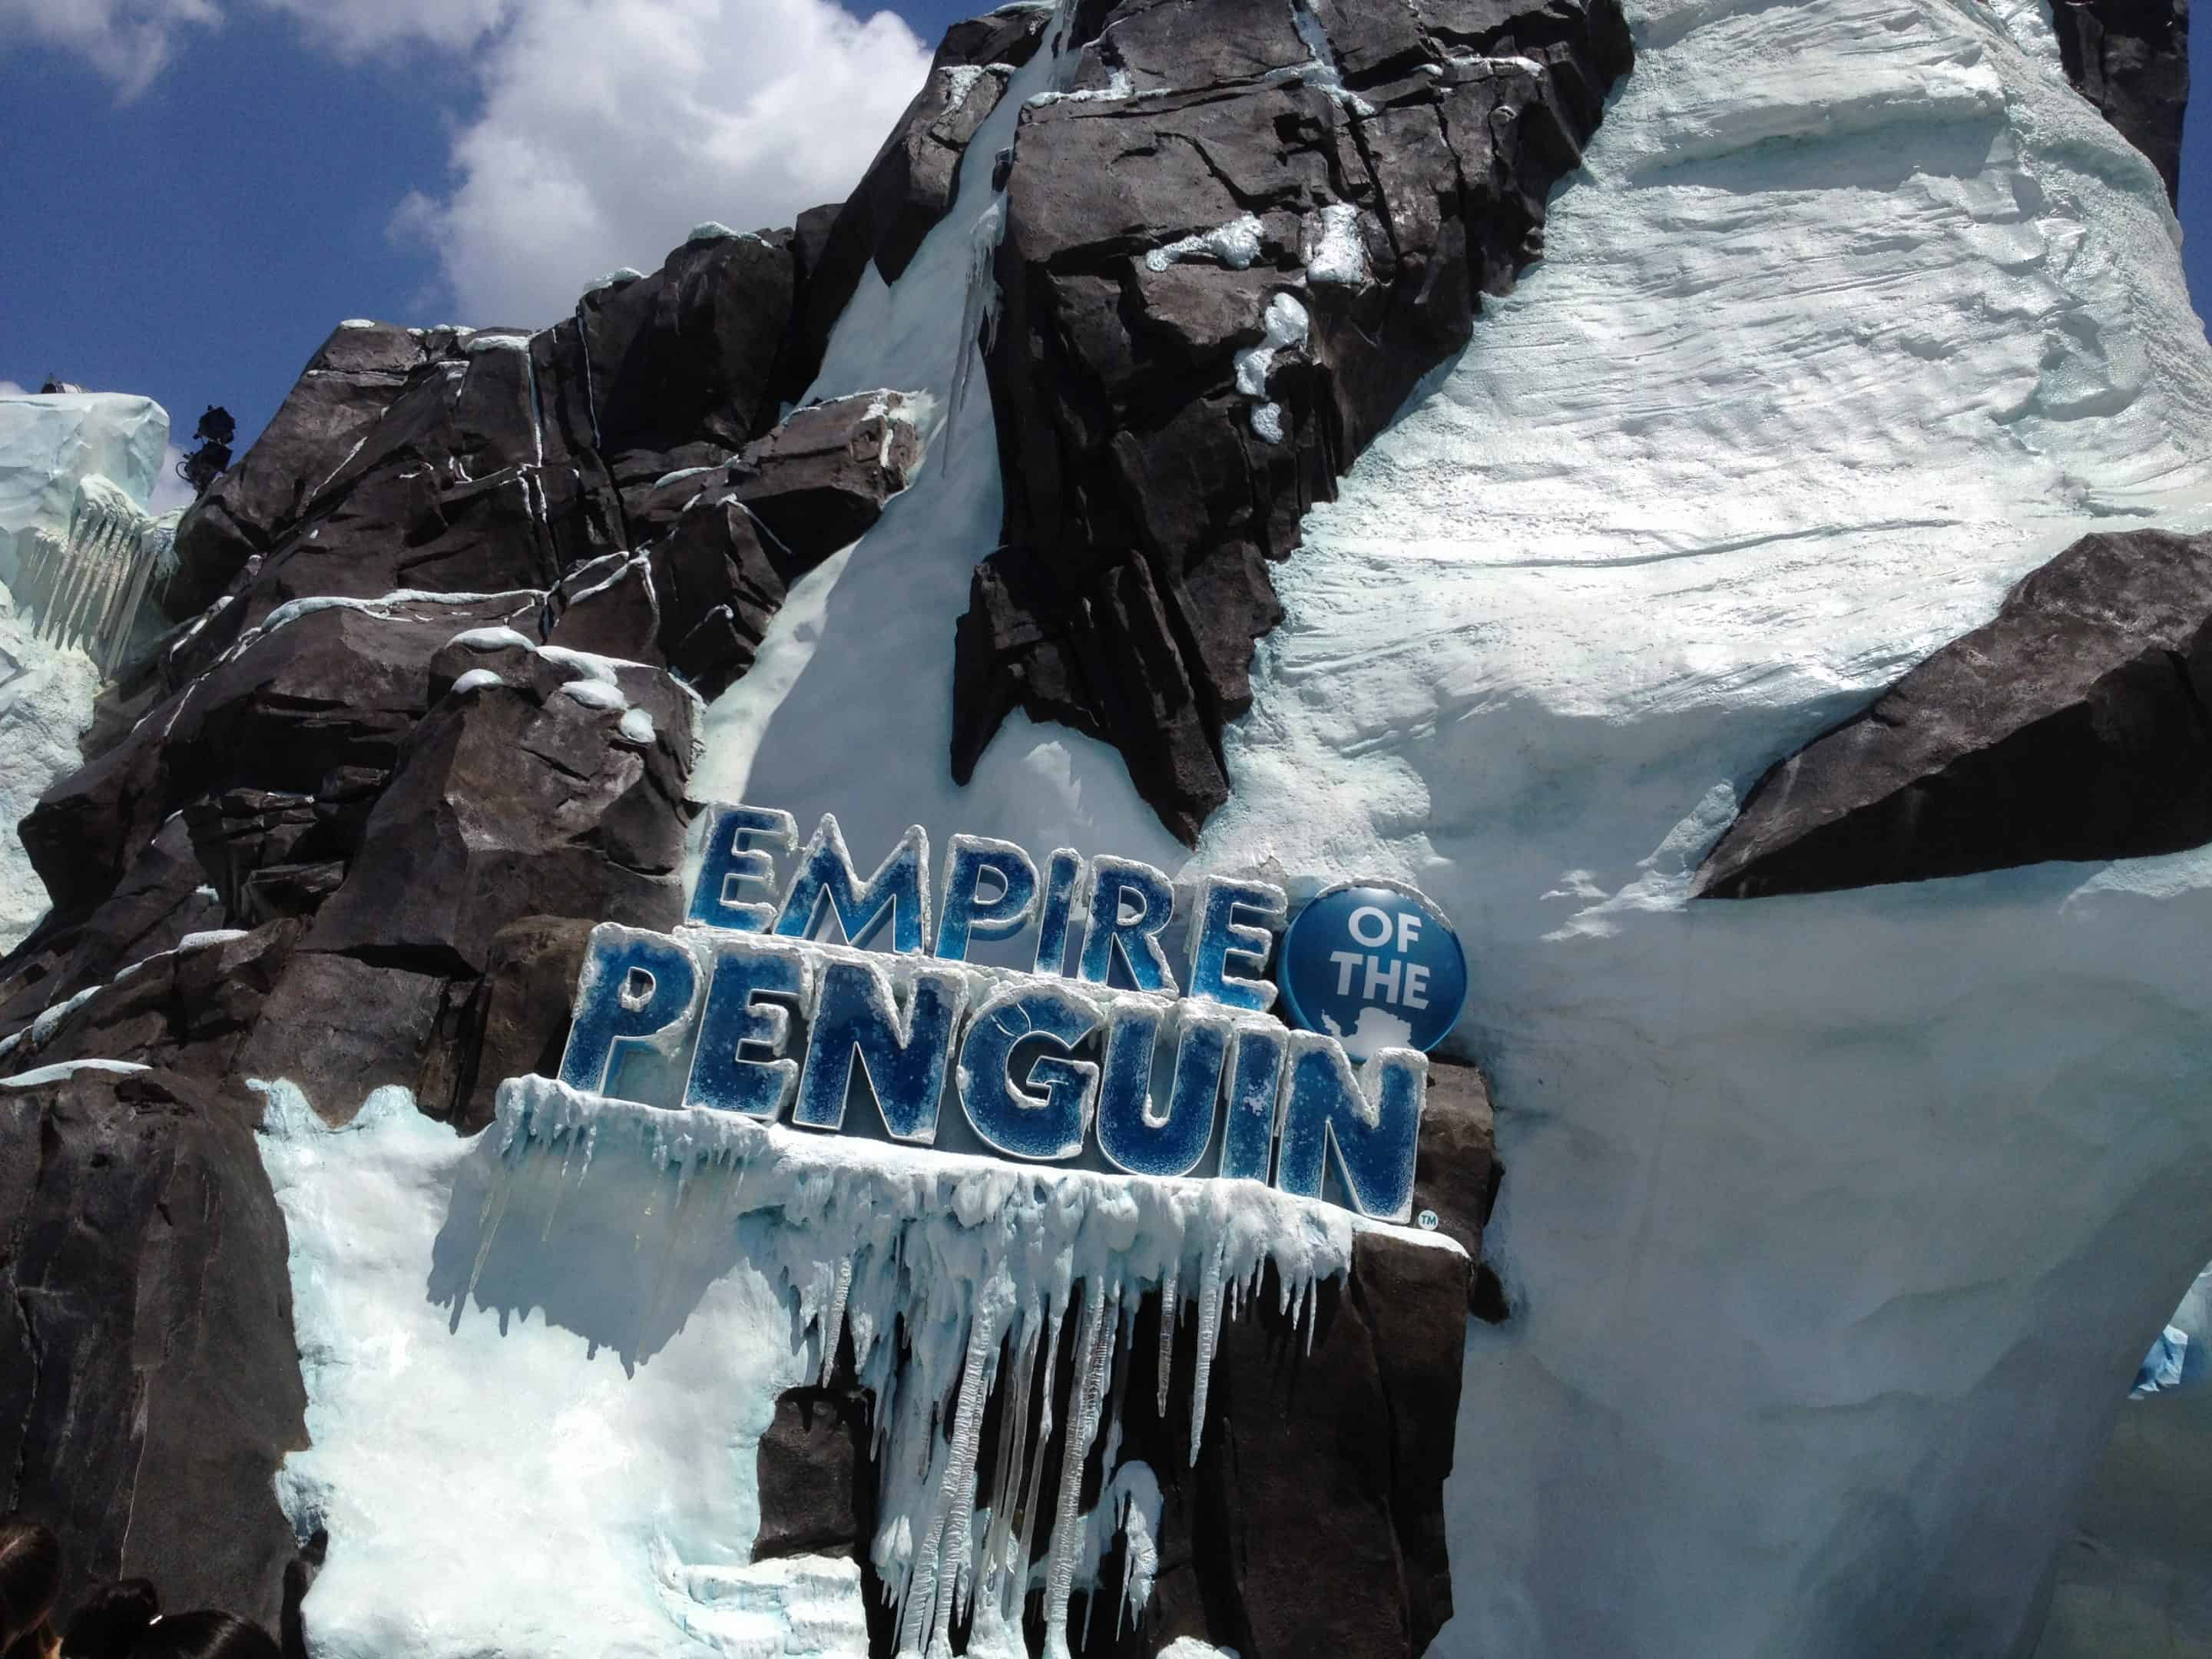 Waddle to the Bottom of the World at SeaWorld's Antarctica:Empire of the Penguin